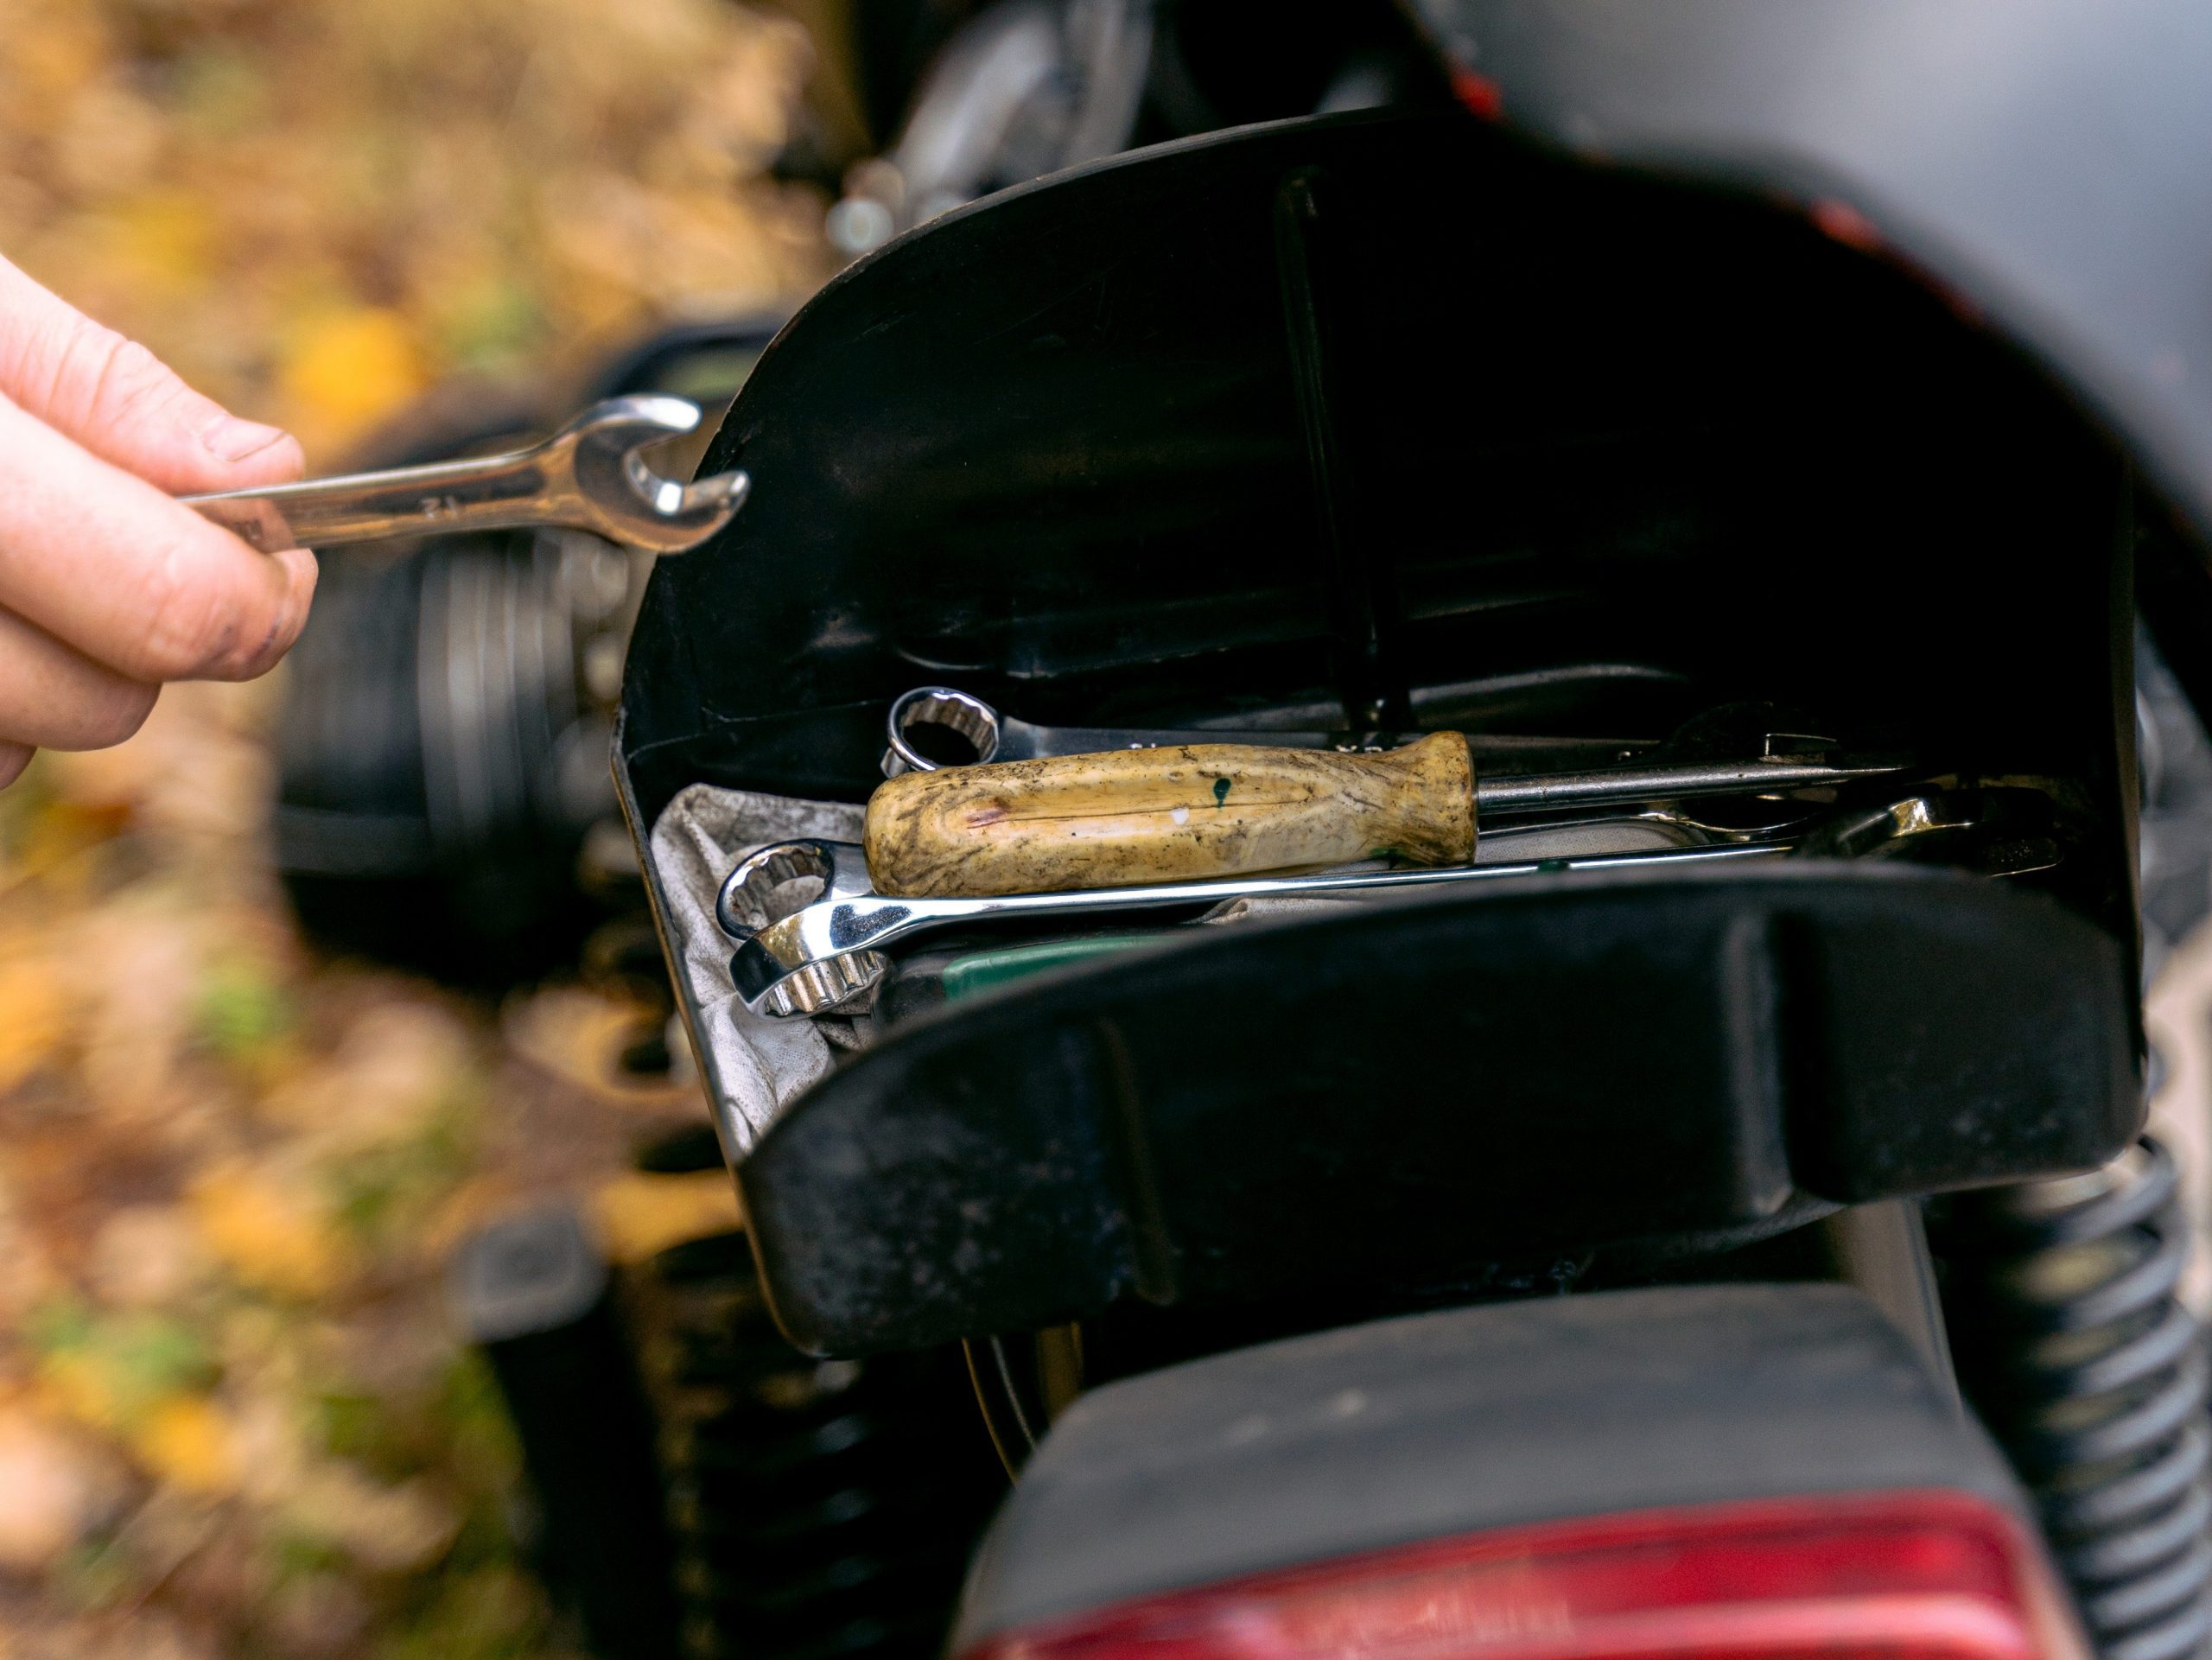 Motorcycle Winter Storage: How To Keep Your Bike Pristine